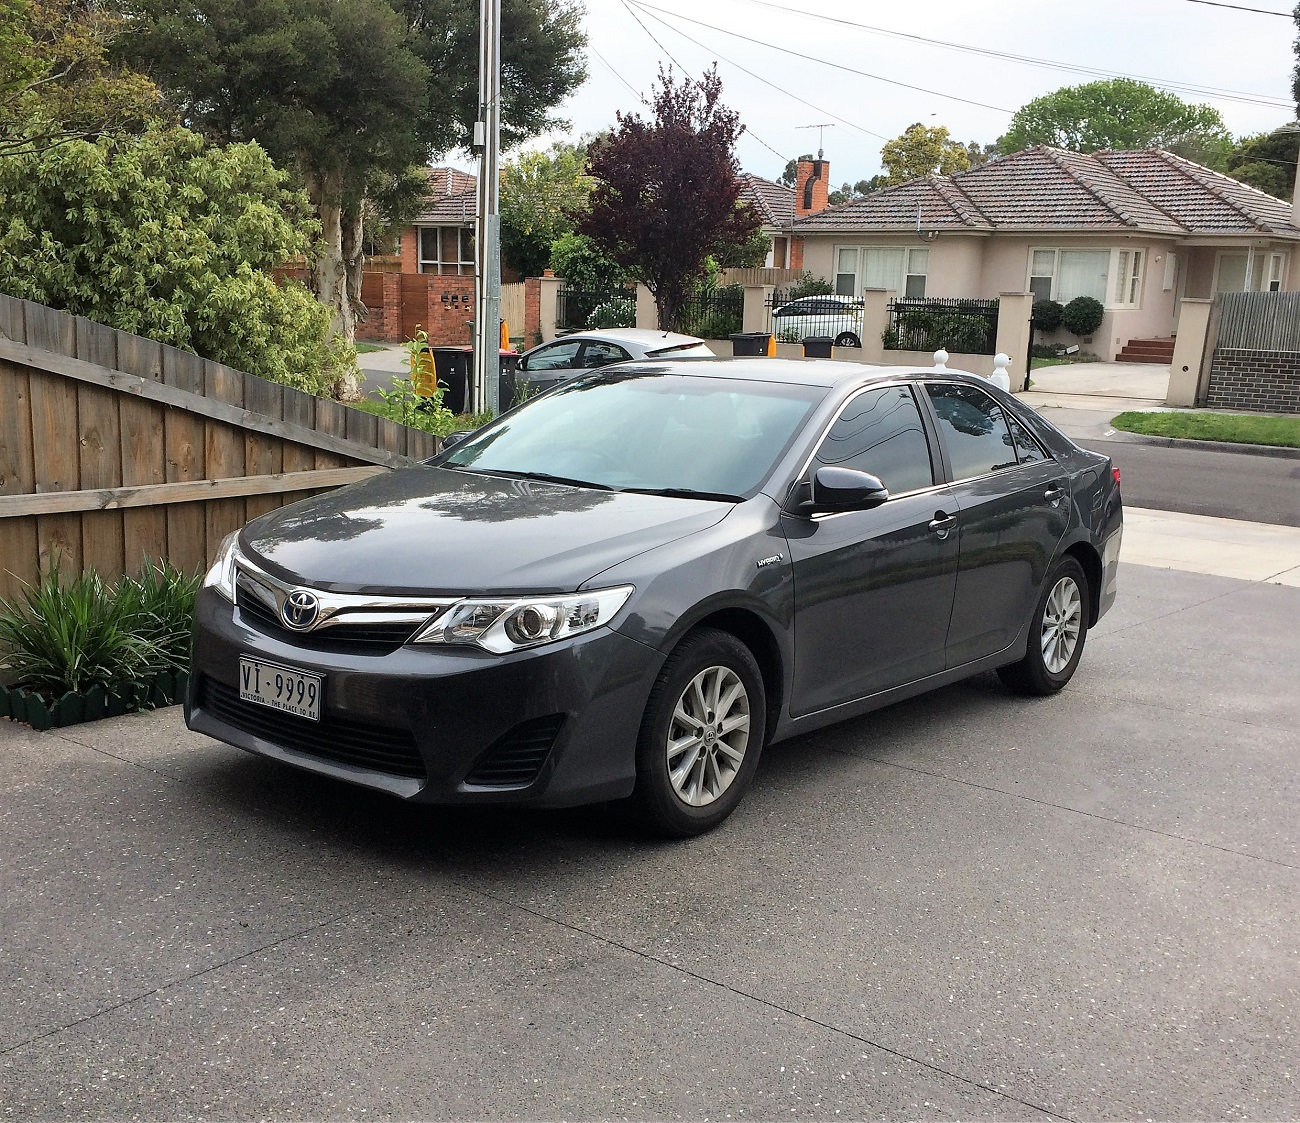 Picture of Dharmendra's 2014 Toyota Camry